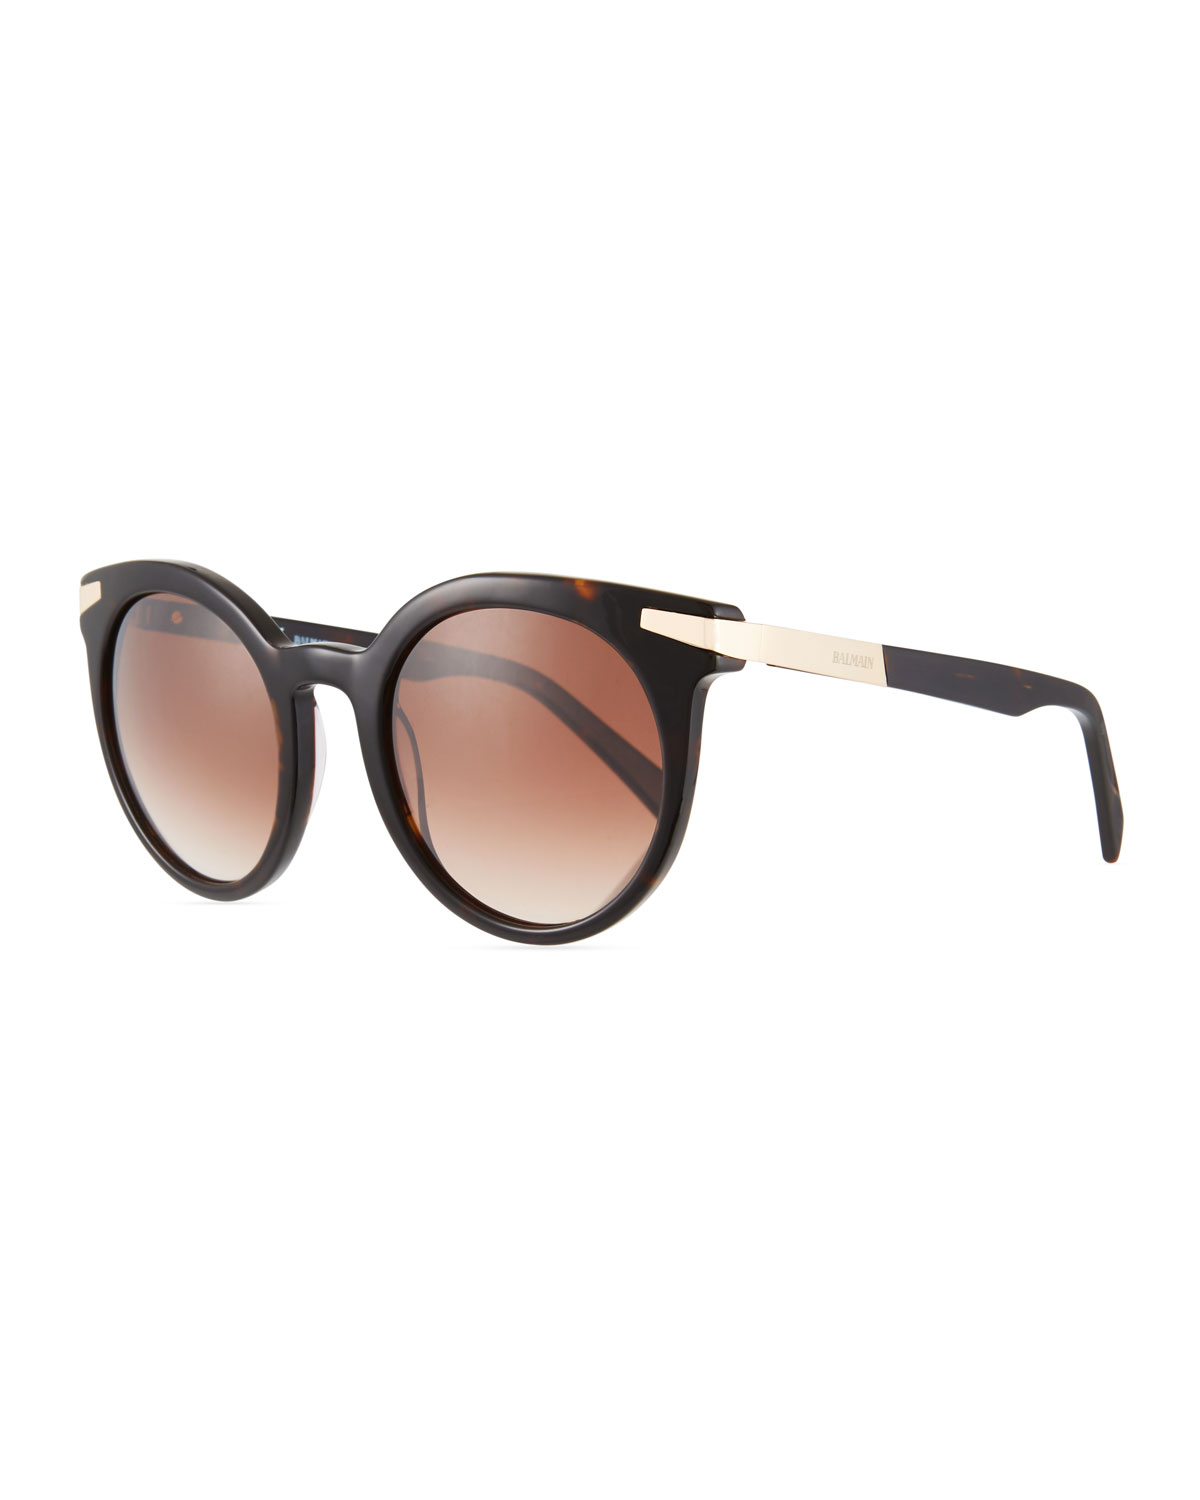 Round Gradient Acetate & Metal Sunglasses